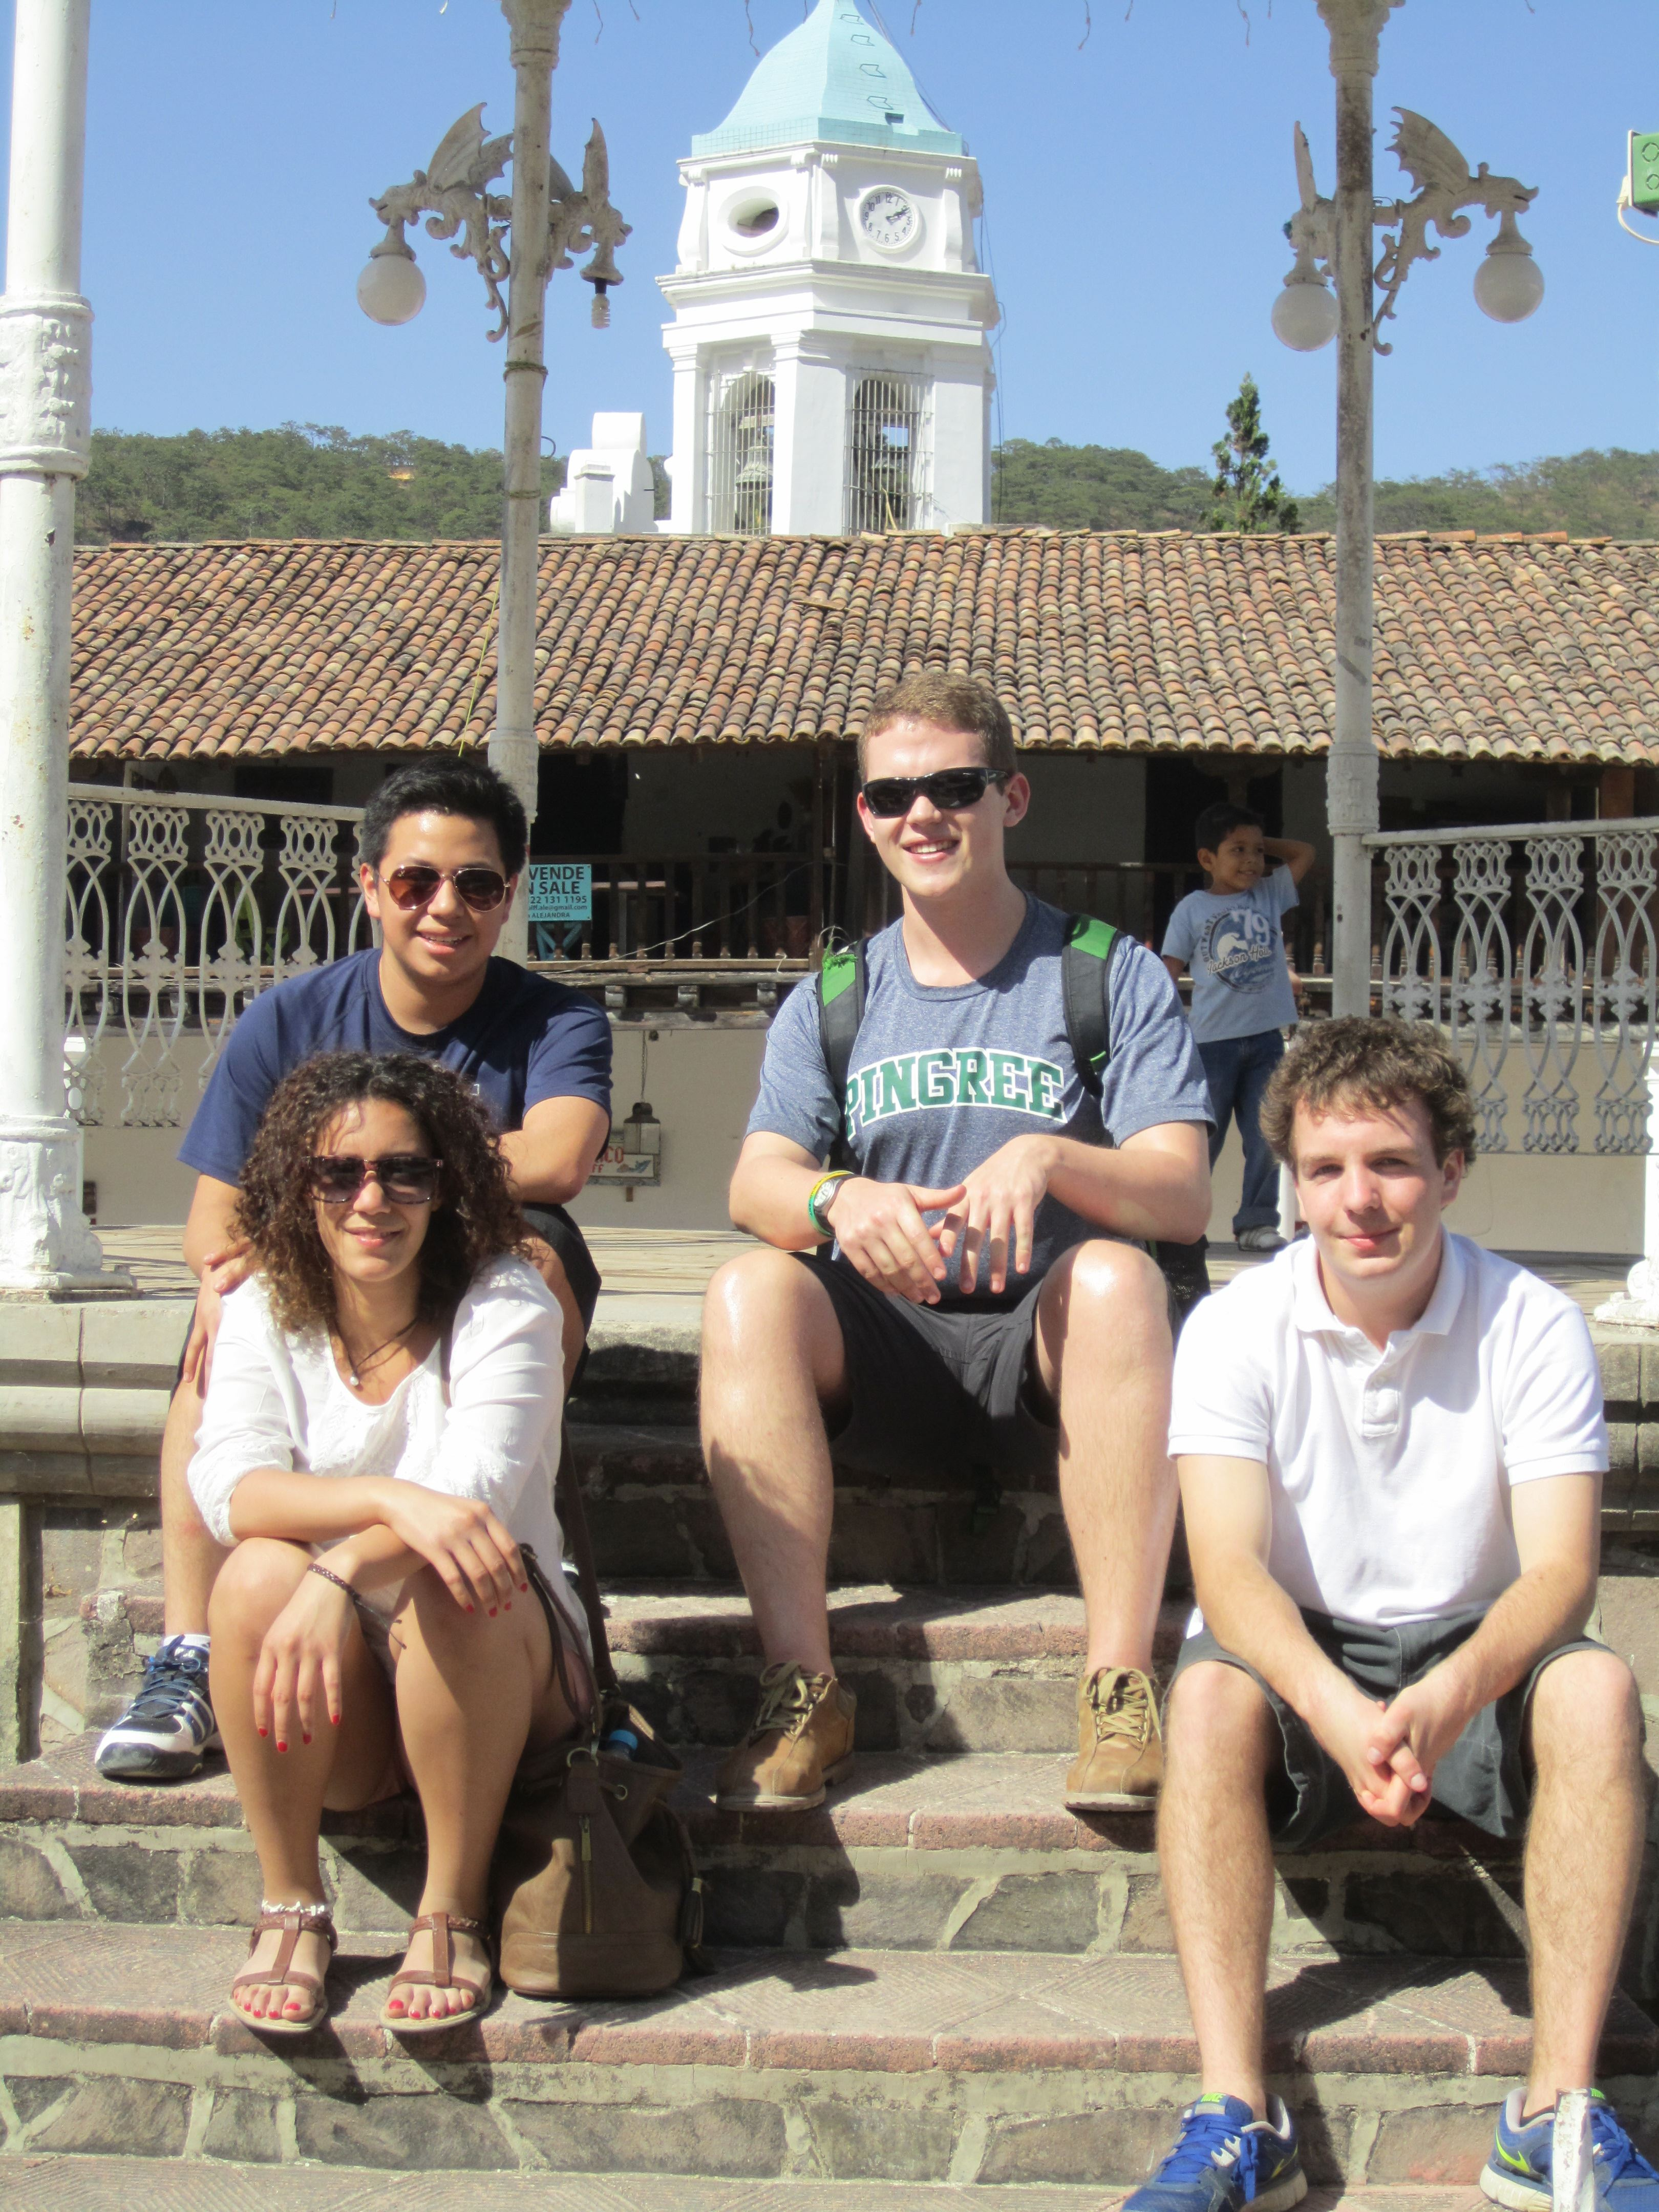 Pingree students in Mexico